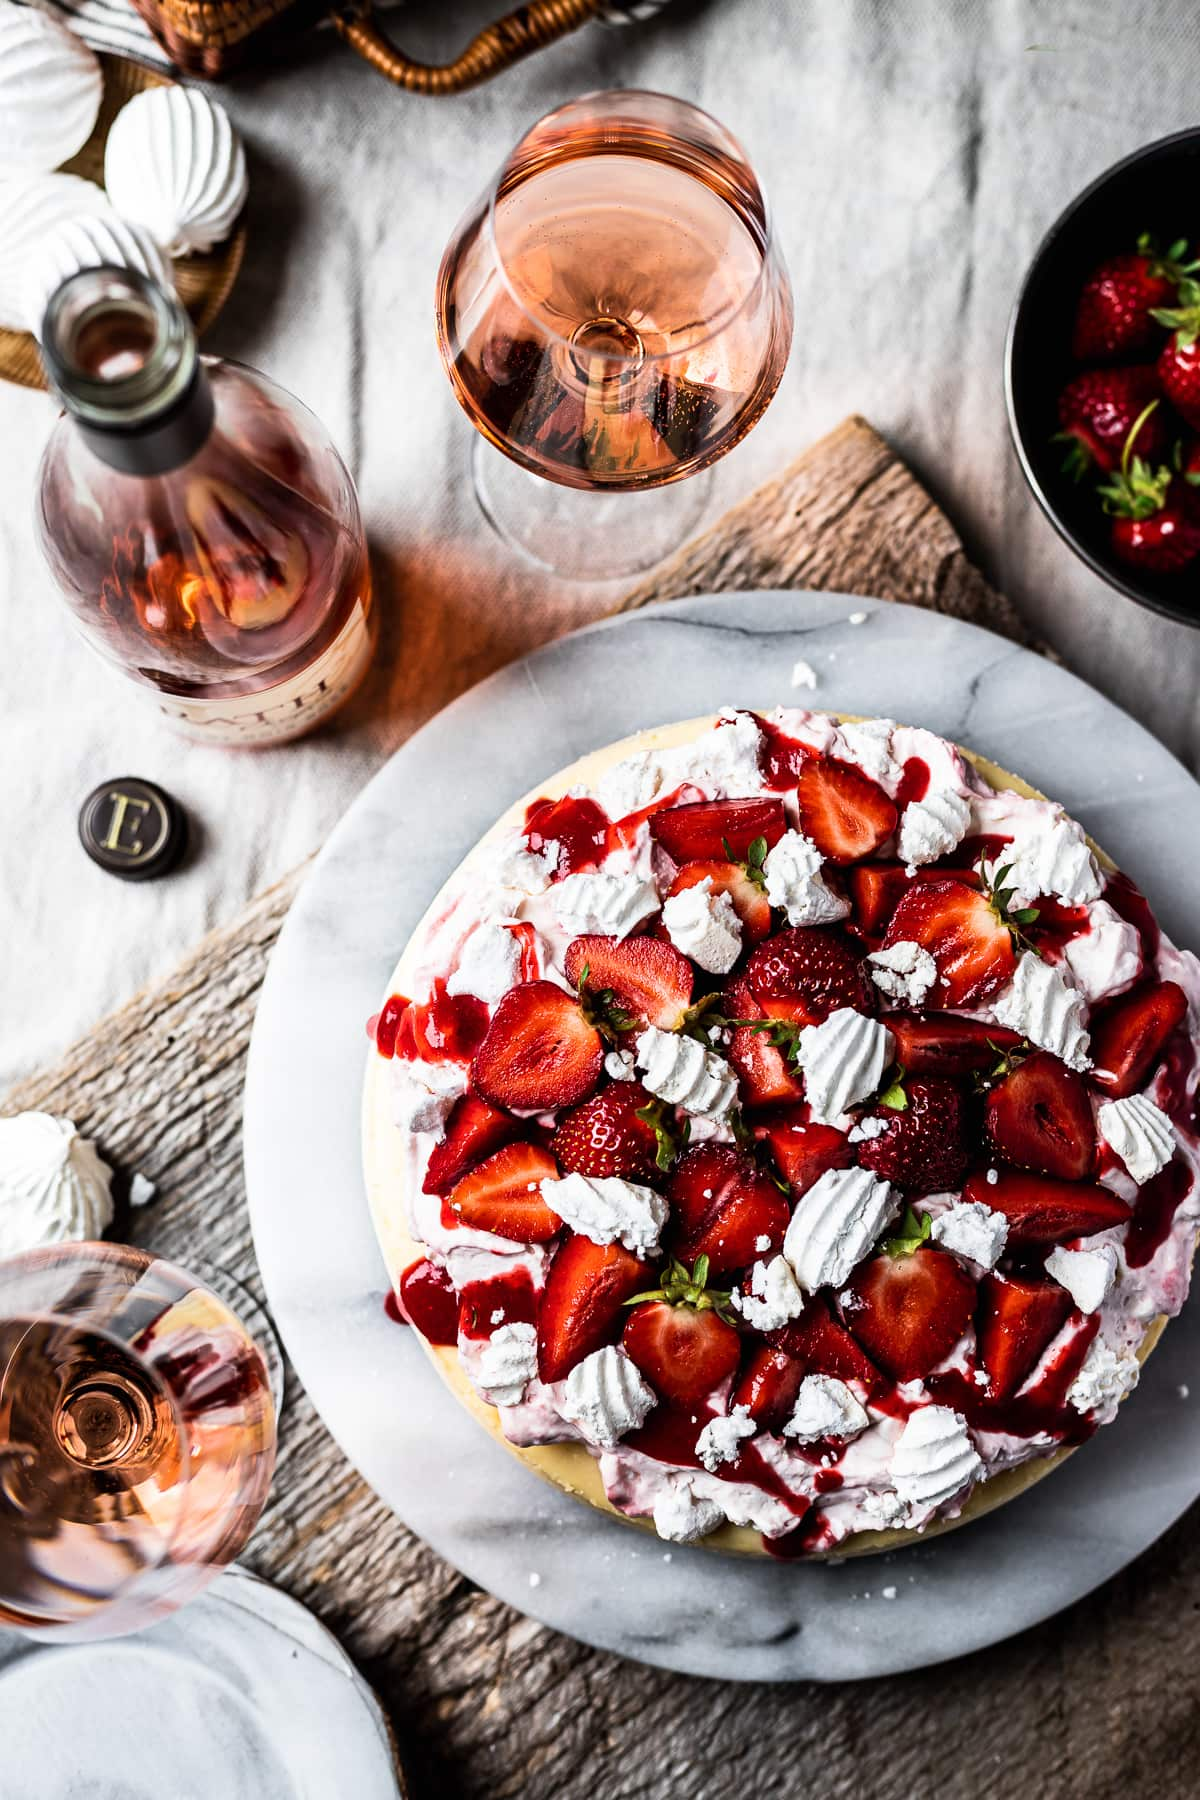 Top view of strawberry topped cheesecake on a marble platter. A rustic wooden board serves as a background. Glasses of rosé wine and a wine bottle rest nearby.